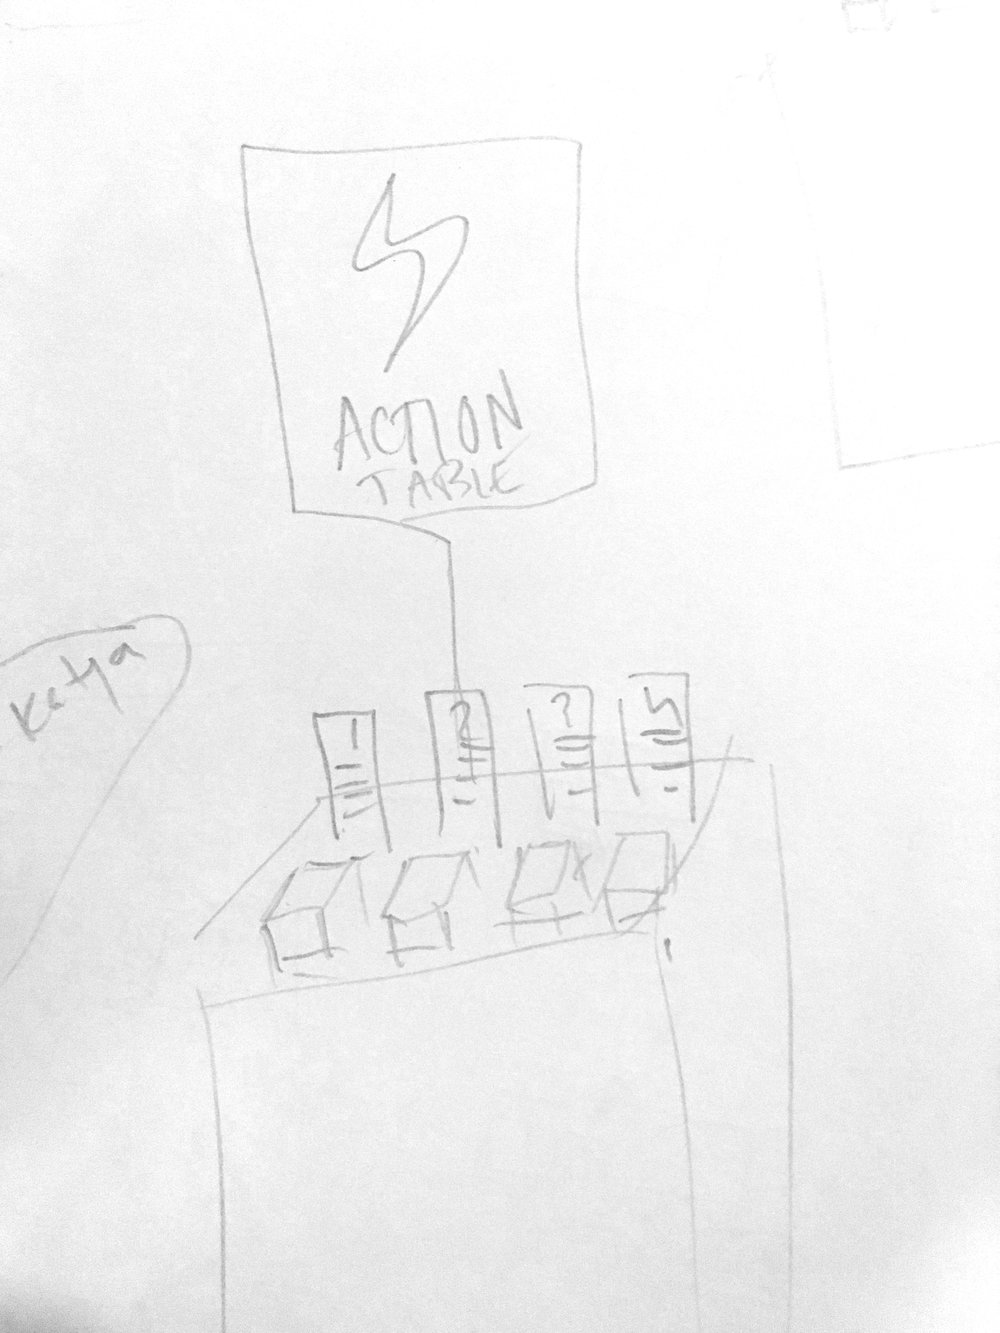 Sketch of action table for the pop-up exhibit at the activist space Playground Coffee Shop in Bed-Stuy, Brooklyn, NY.